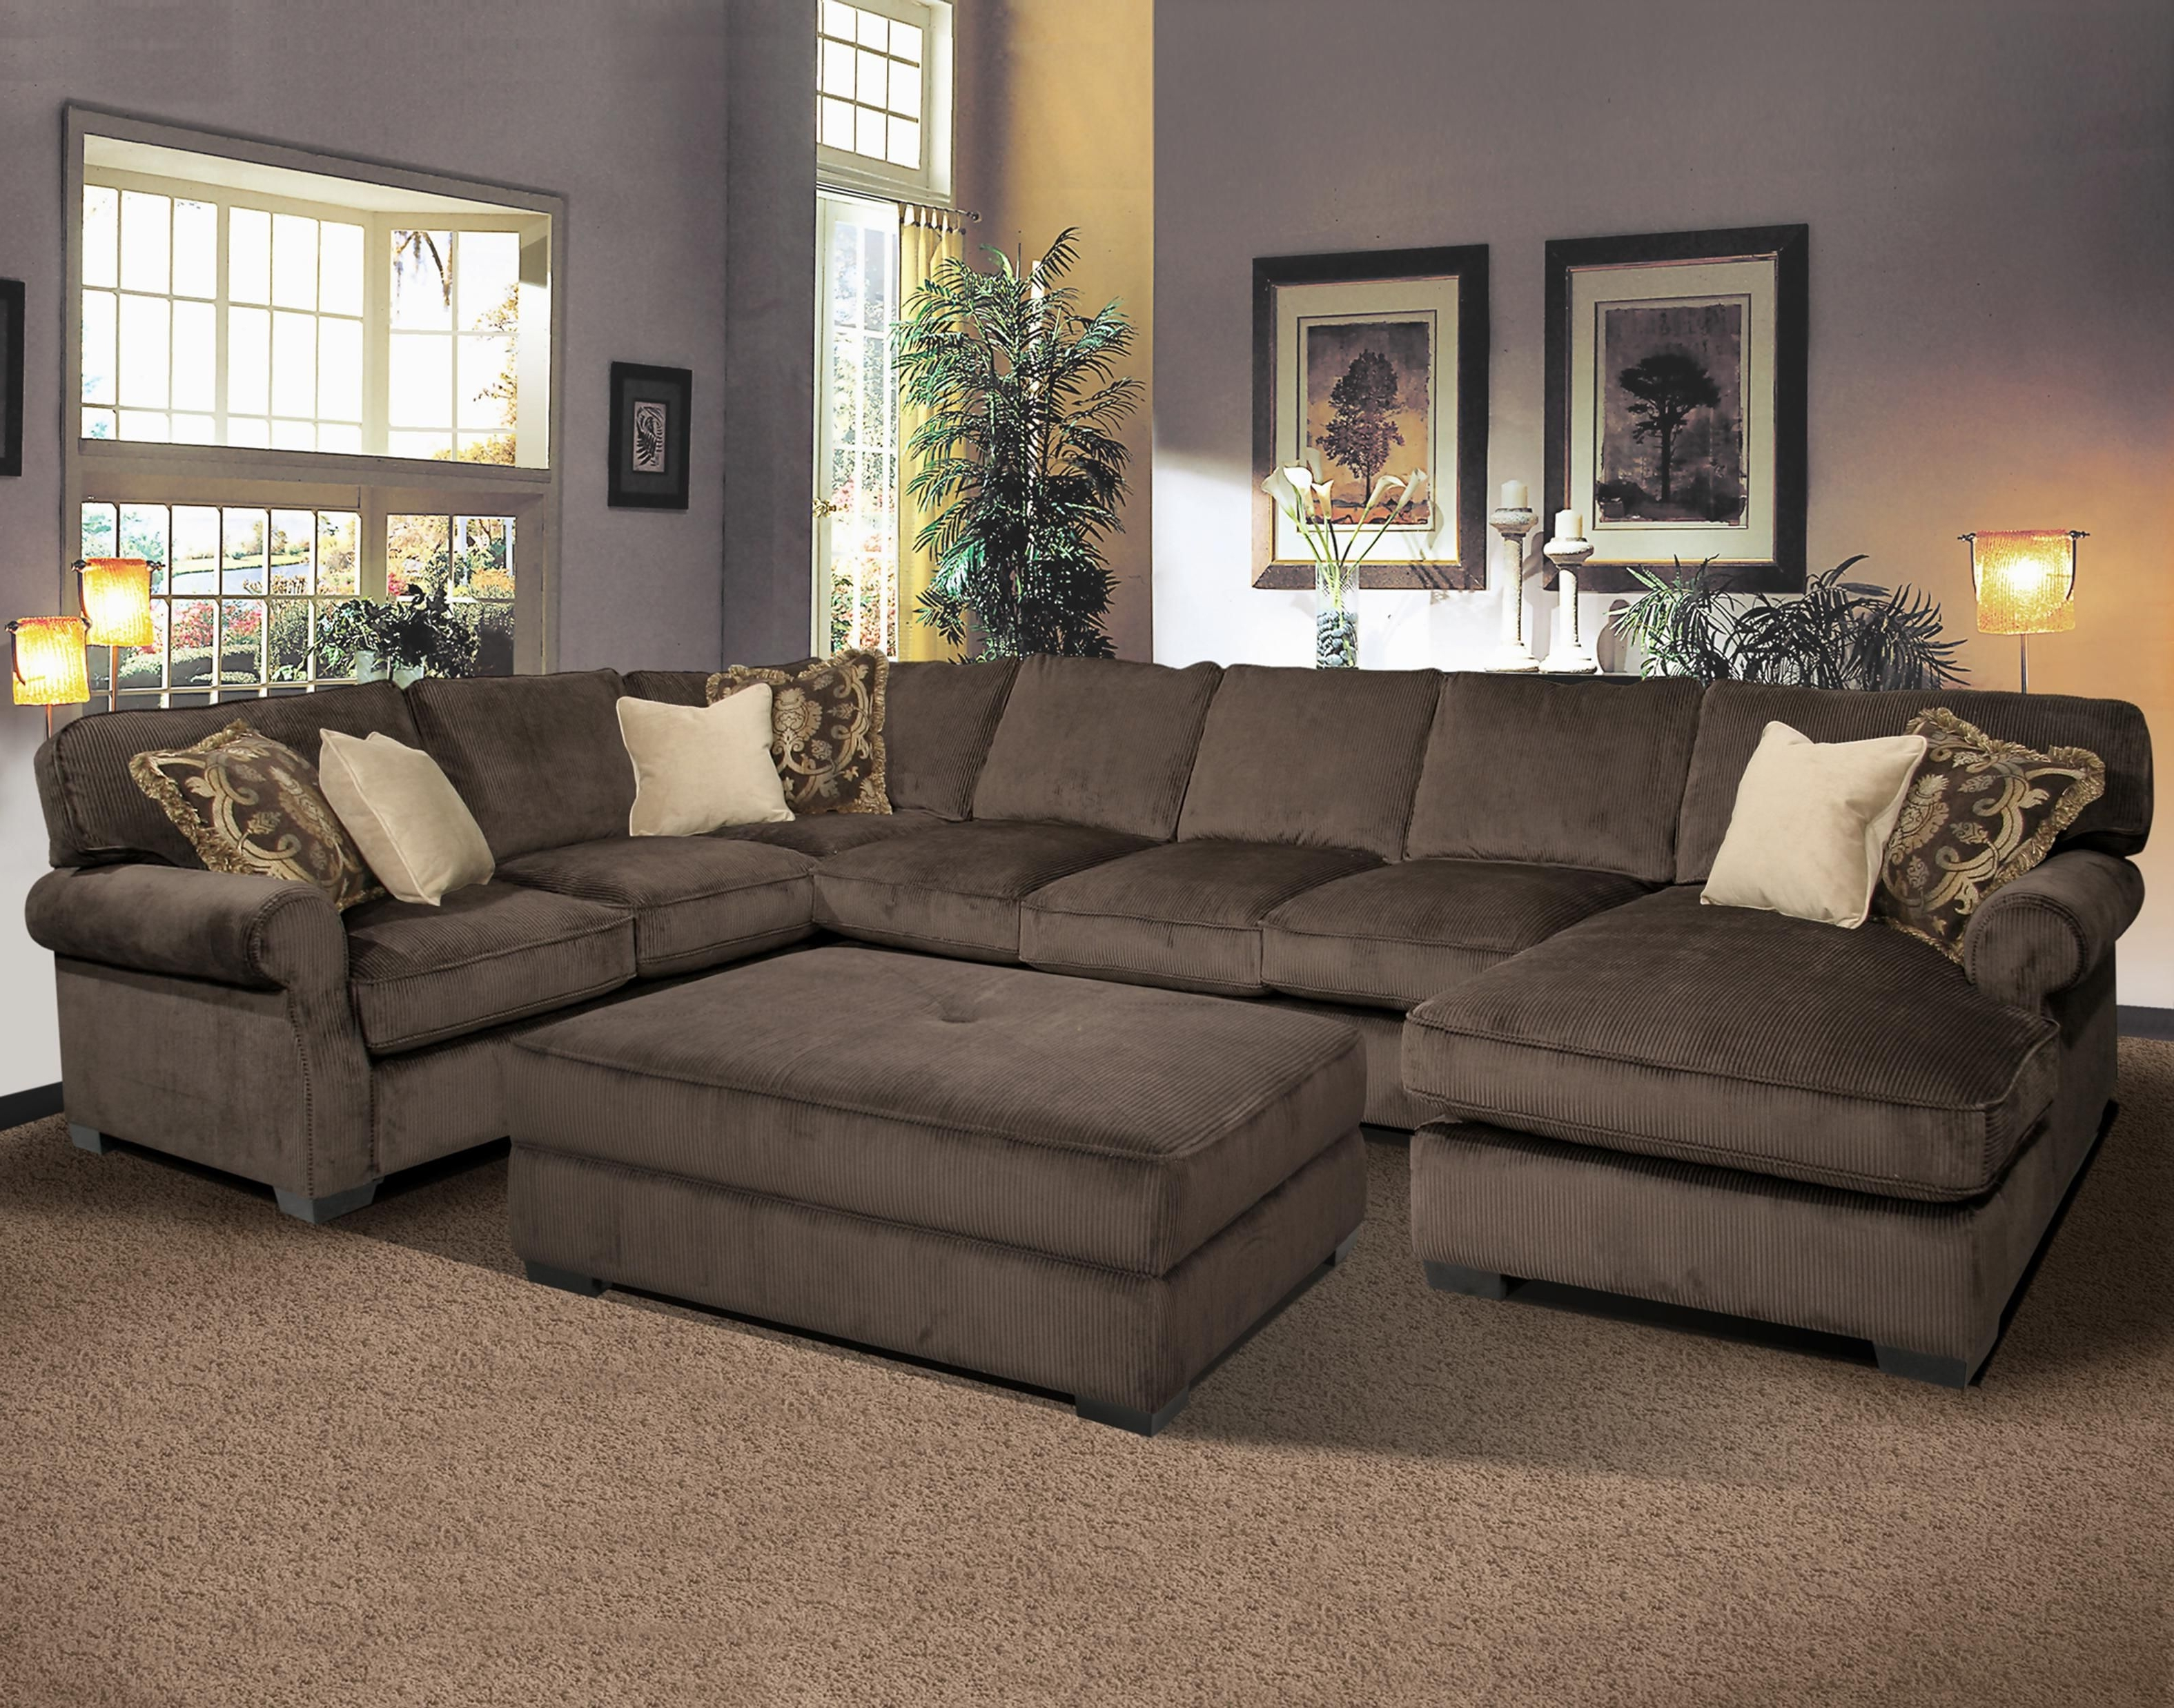 Most Recently Released Grand Island Oversized Cocktail Ottoman For Sectional Sofa Regarding Sectional Sofas In Houston Tx (View 9 of 15)